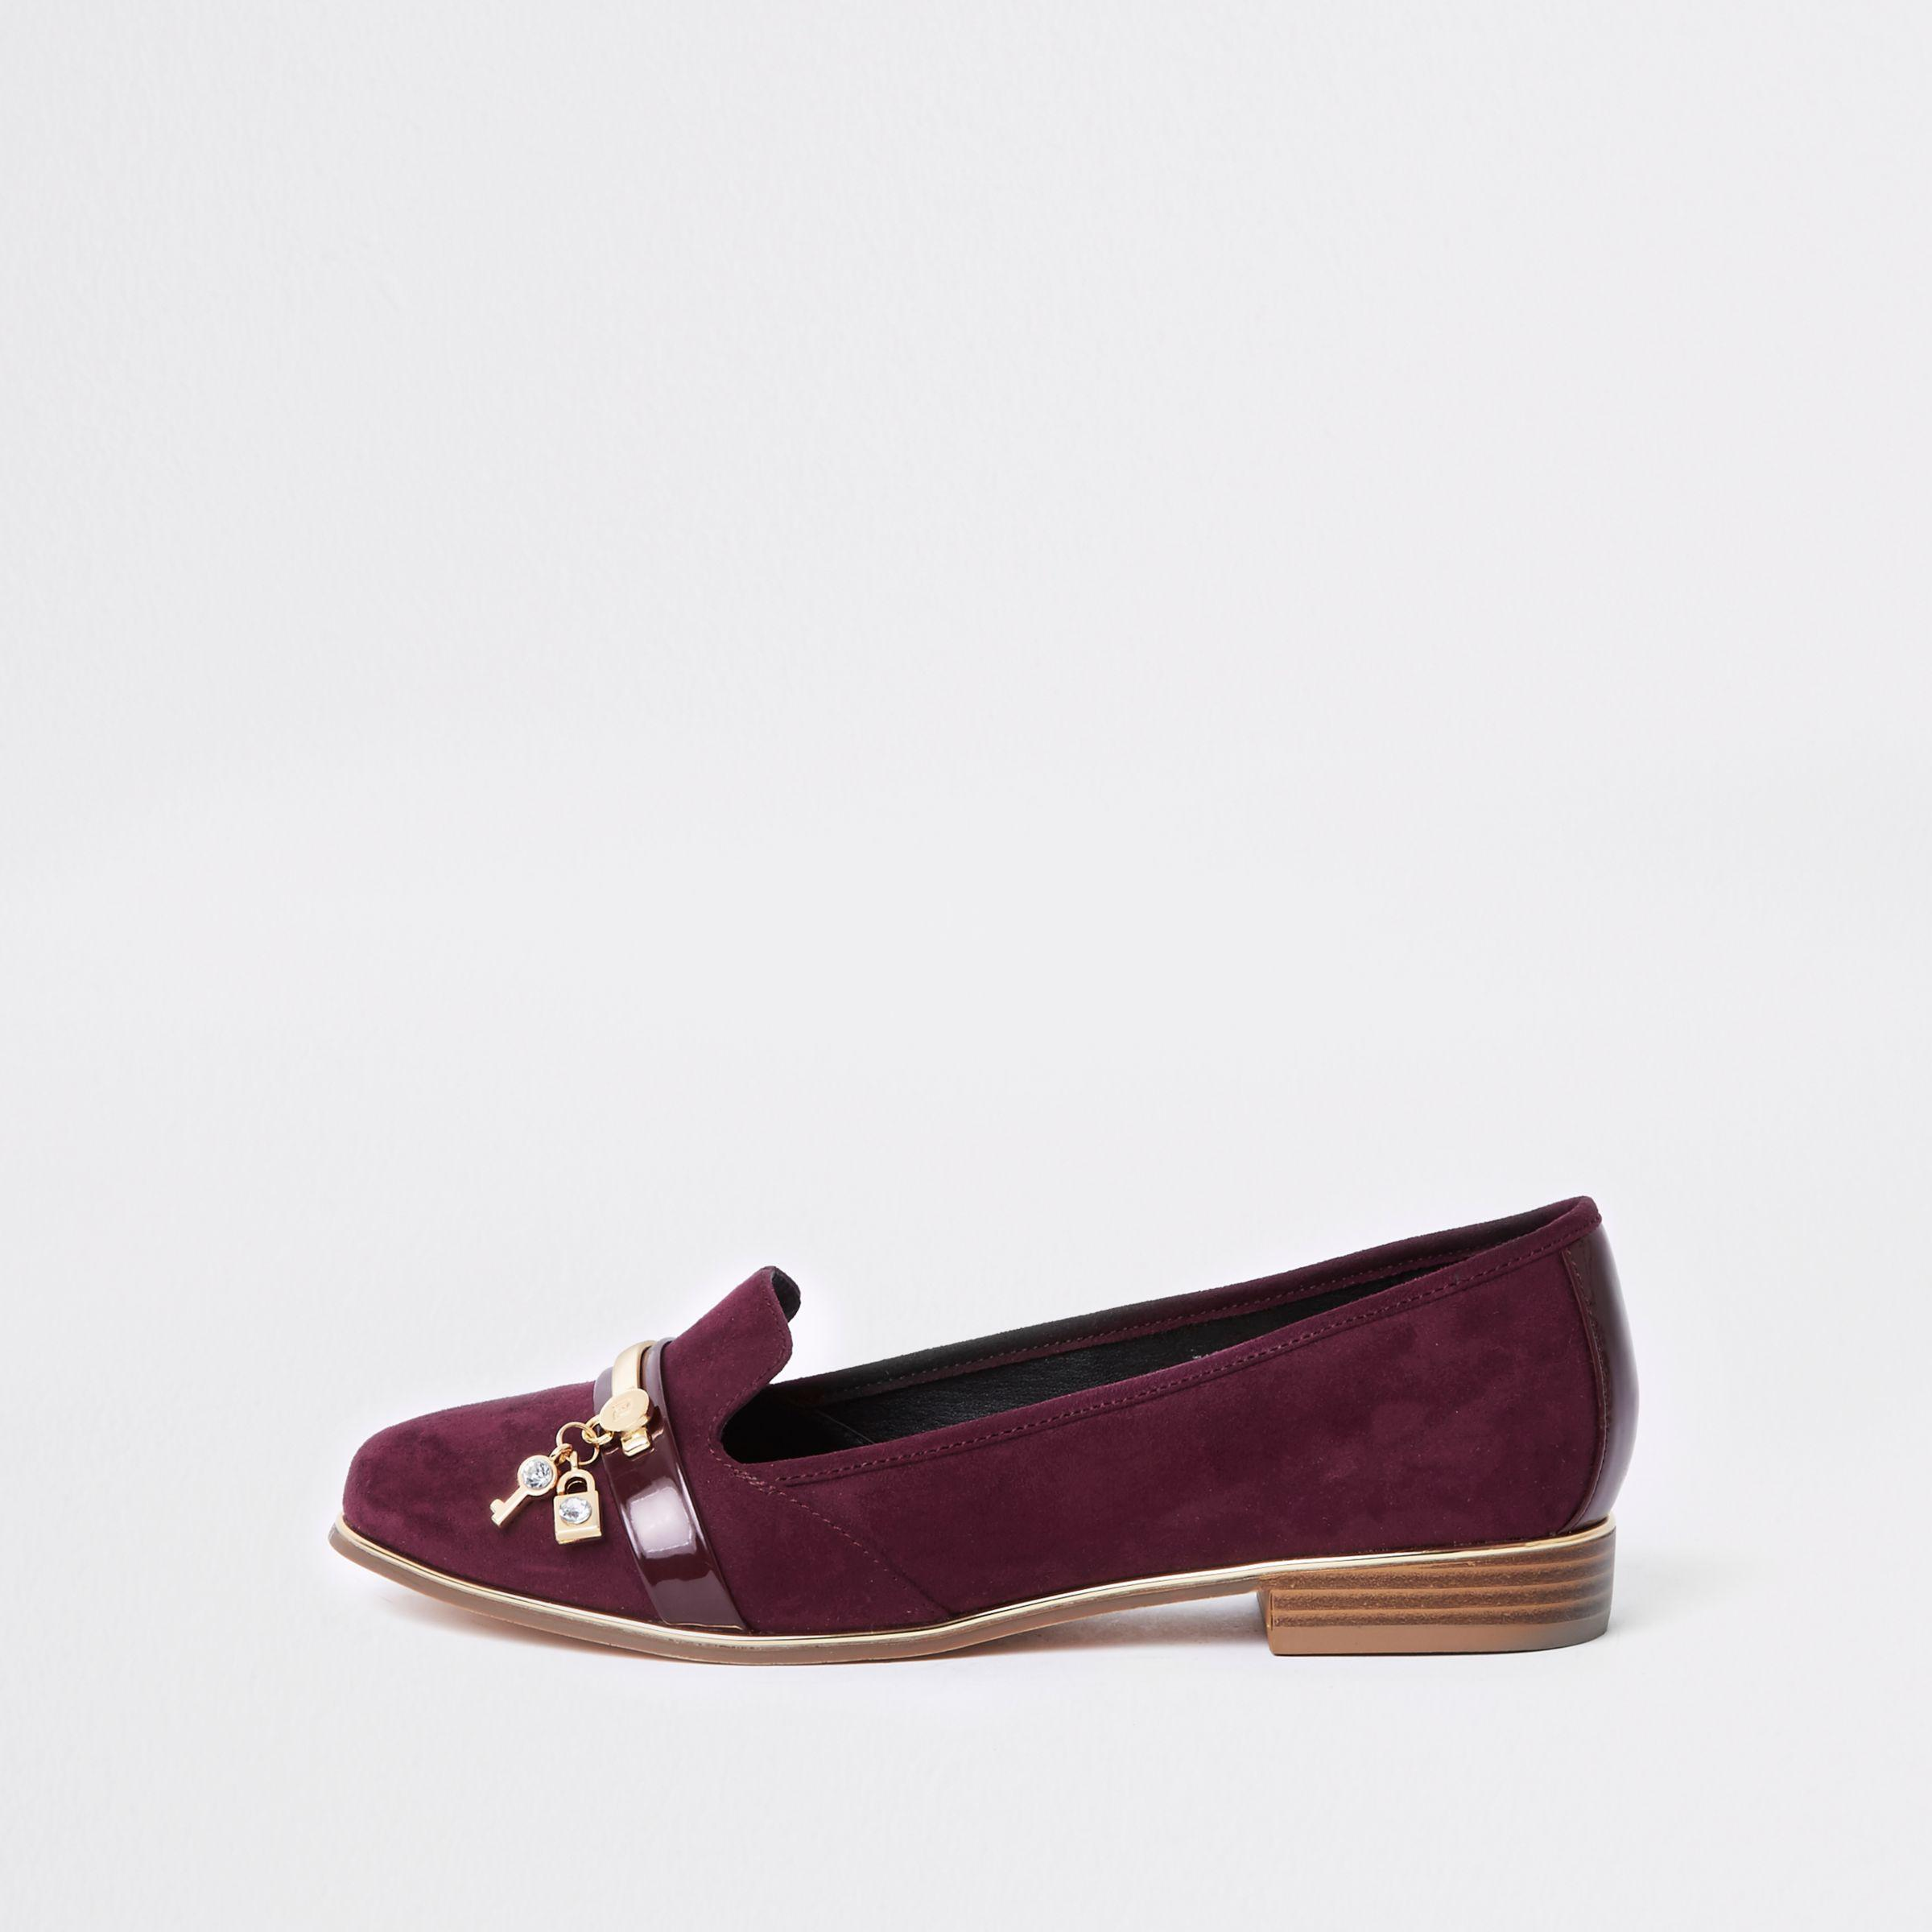 Lyst River Island Dark Red Wide Fit Lock And Key Loafer In D Shoes Slip On Mocasine Casual Loafers Black Womens